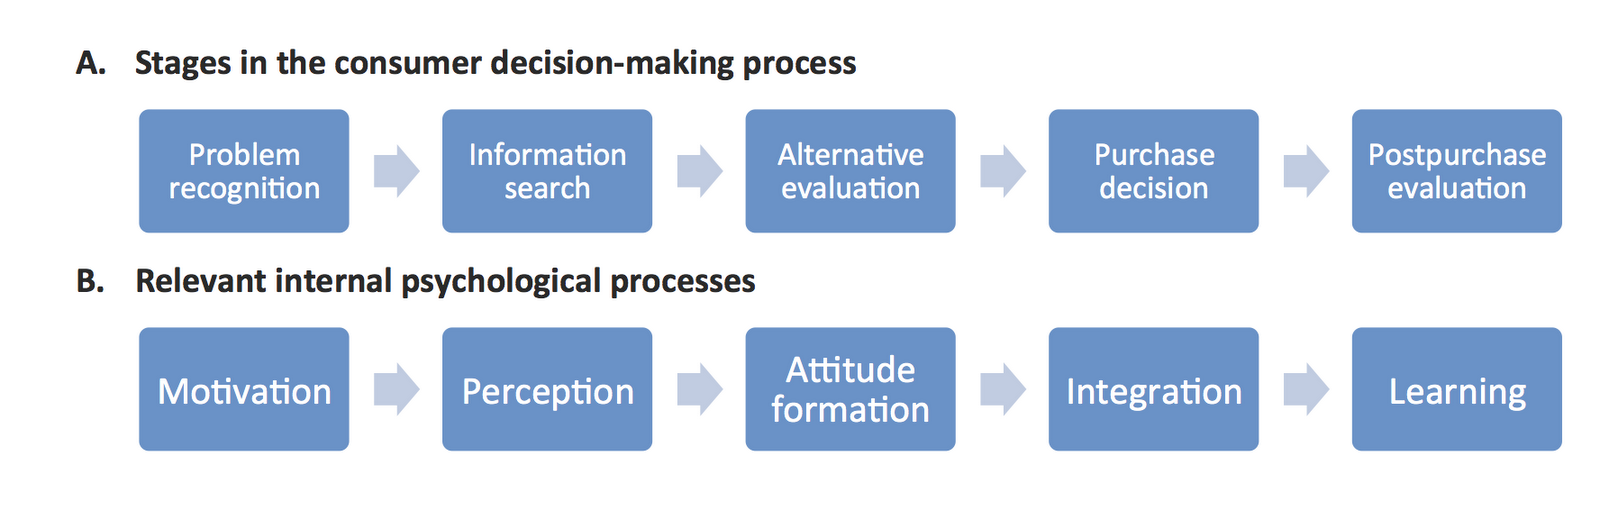 buyer behavior typical decision making processes